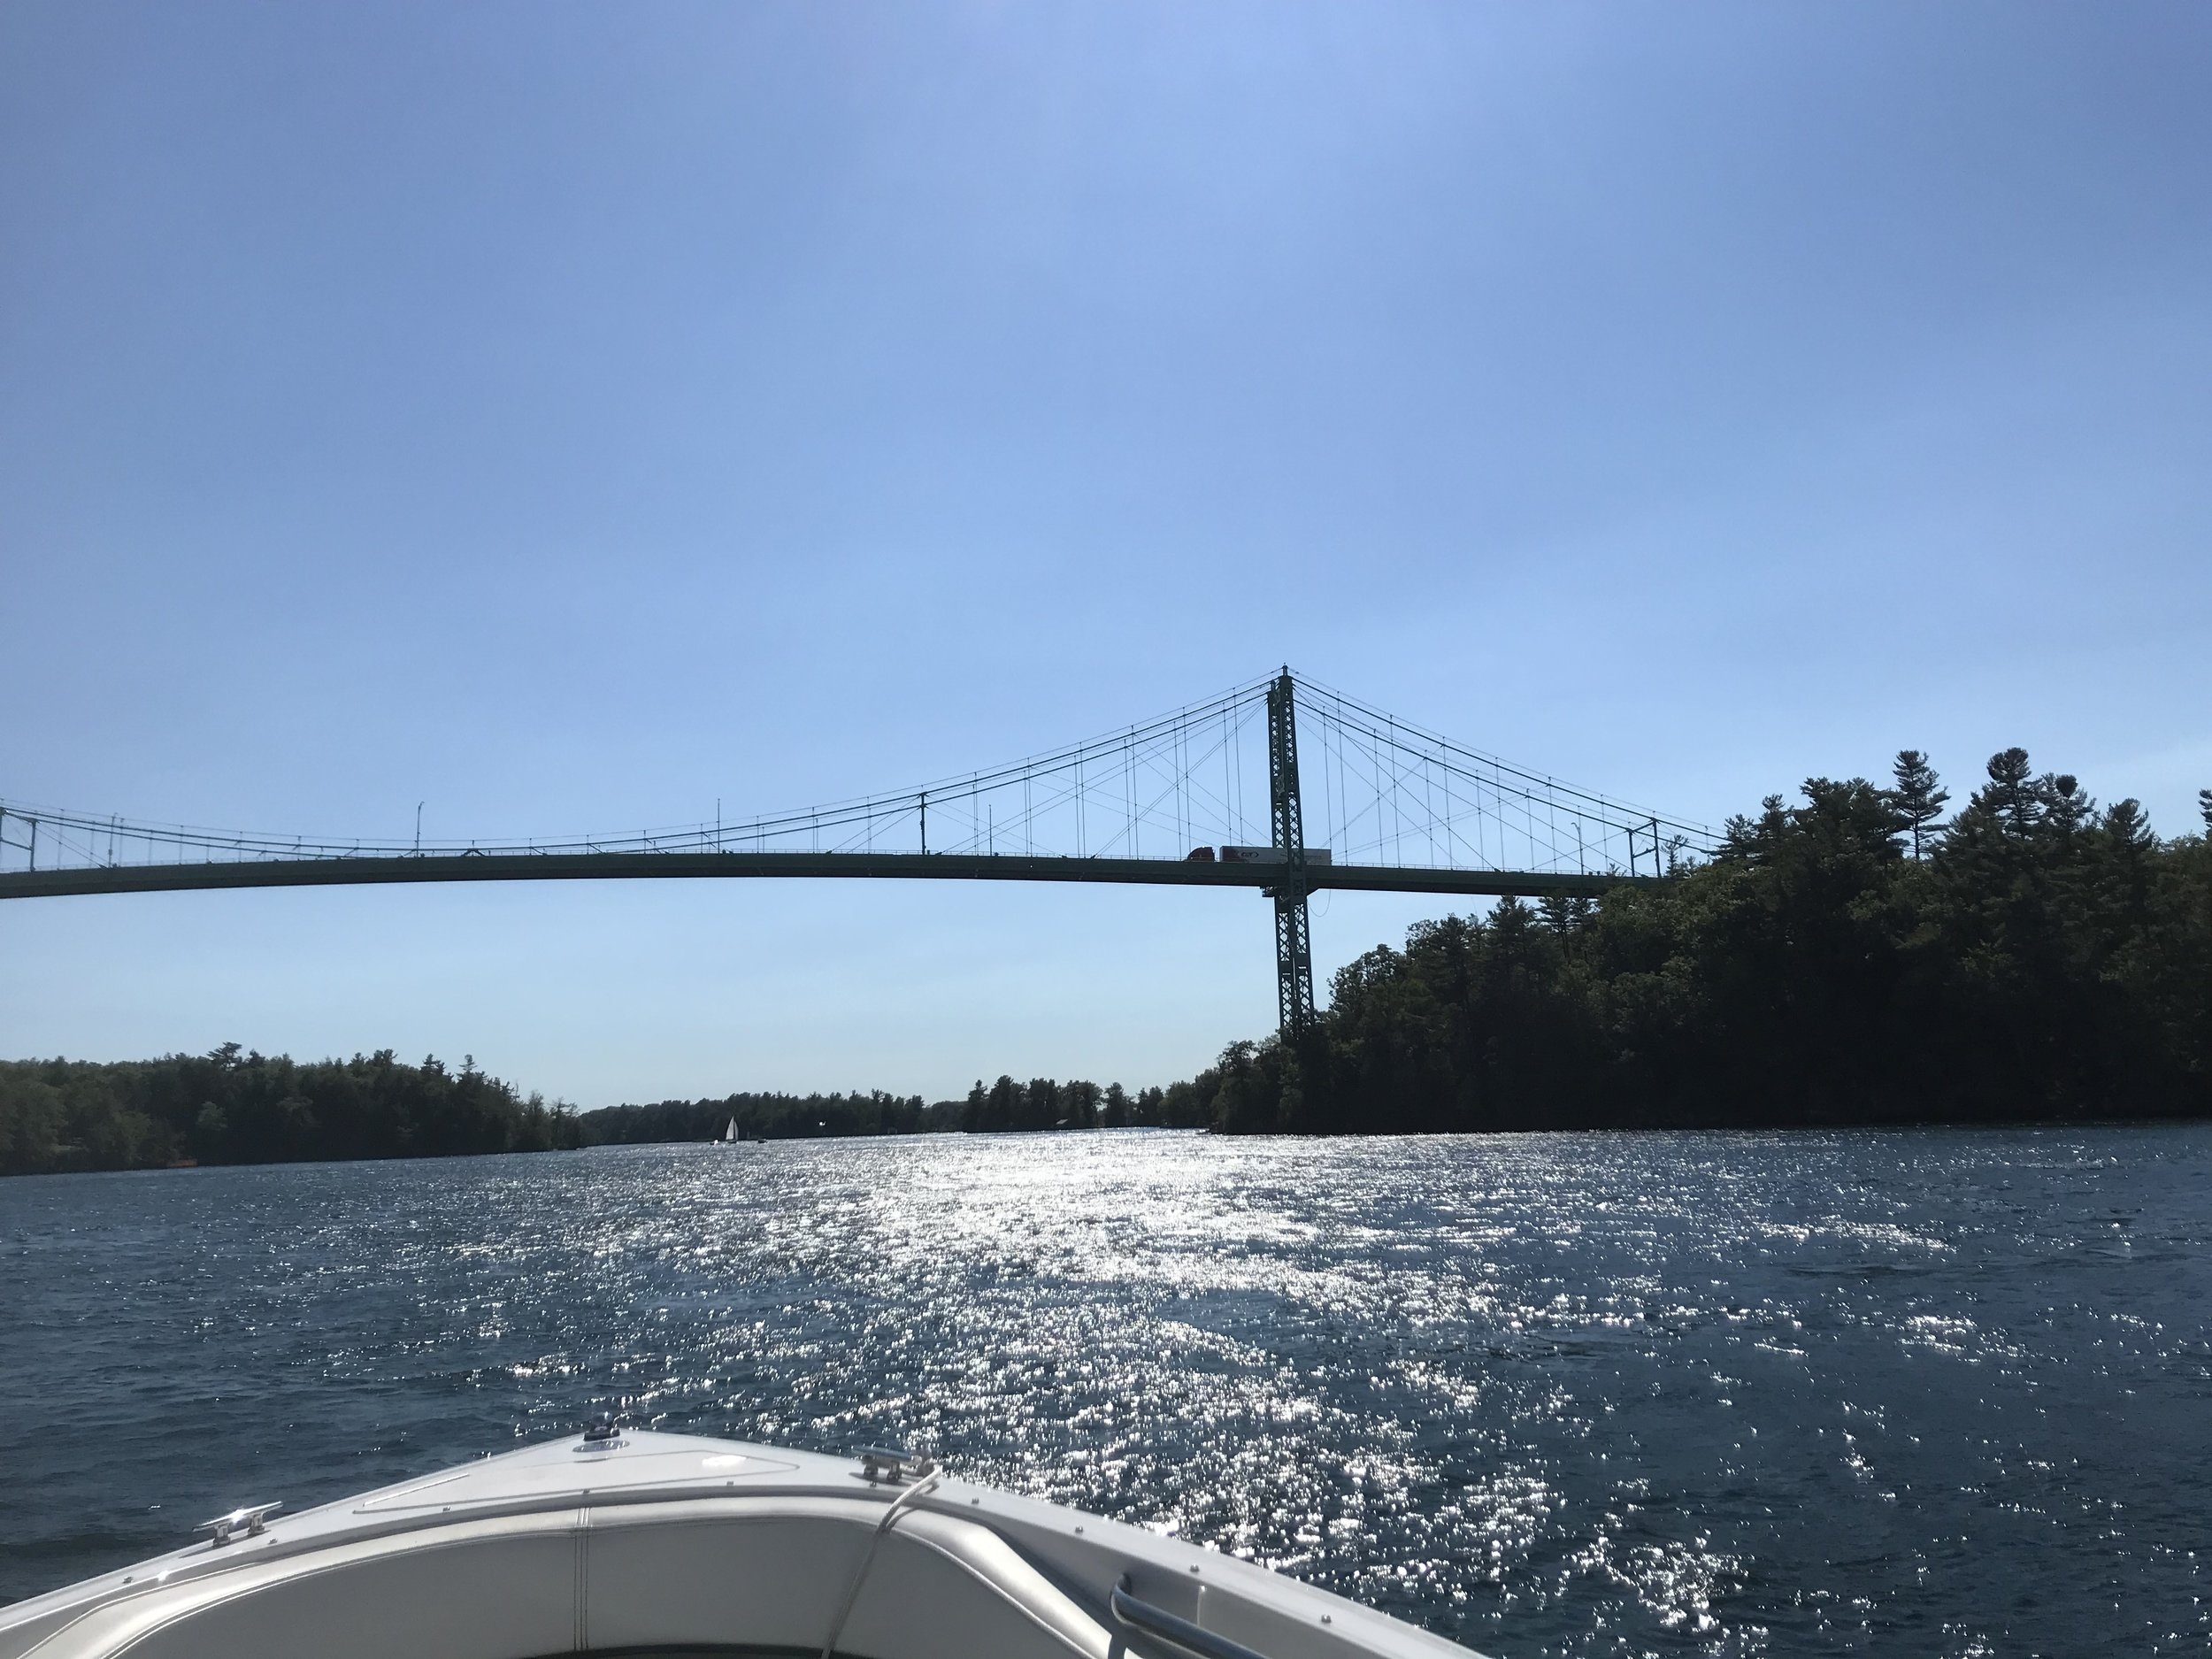 St. Lawrence Seaway between the US and Canada (Gary Goodwin